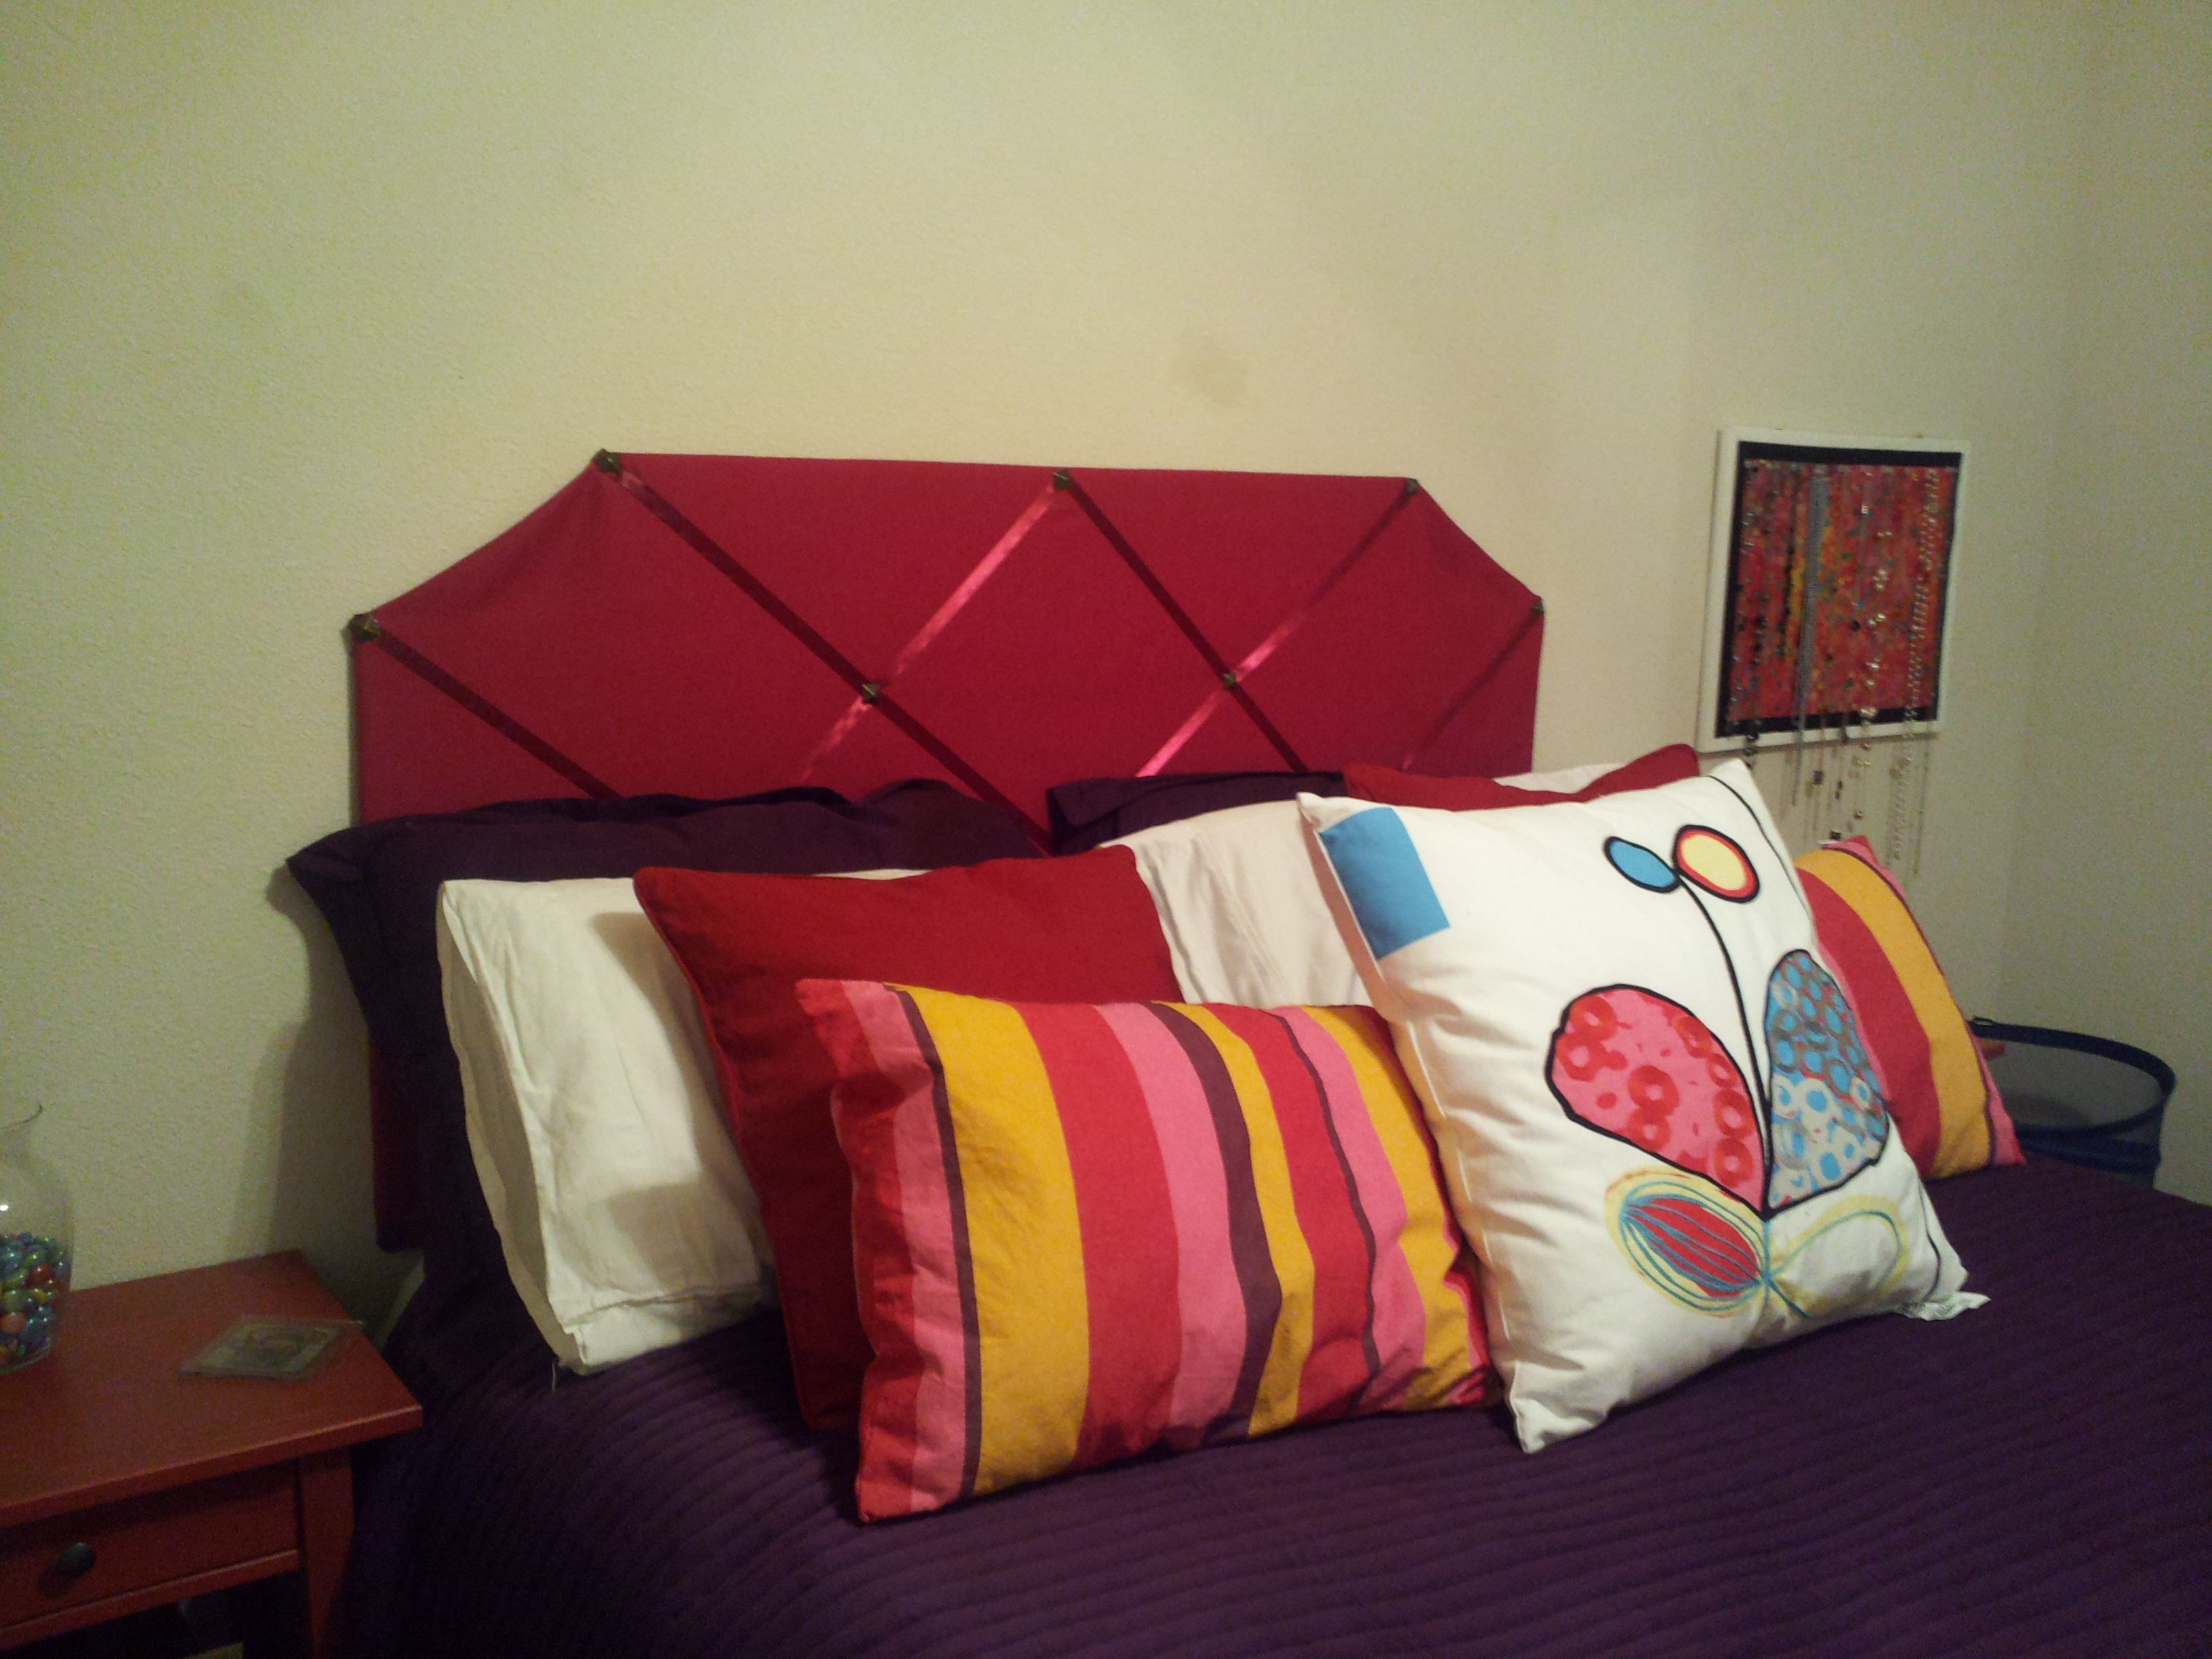 Made my own bed headboard materials cardboard quilting batting